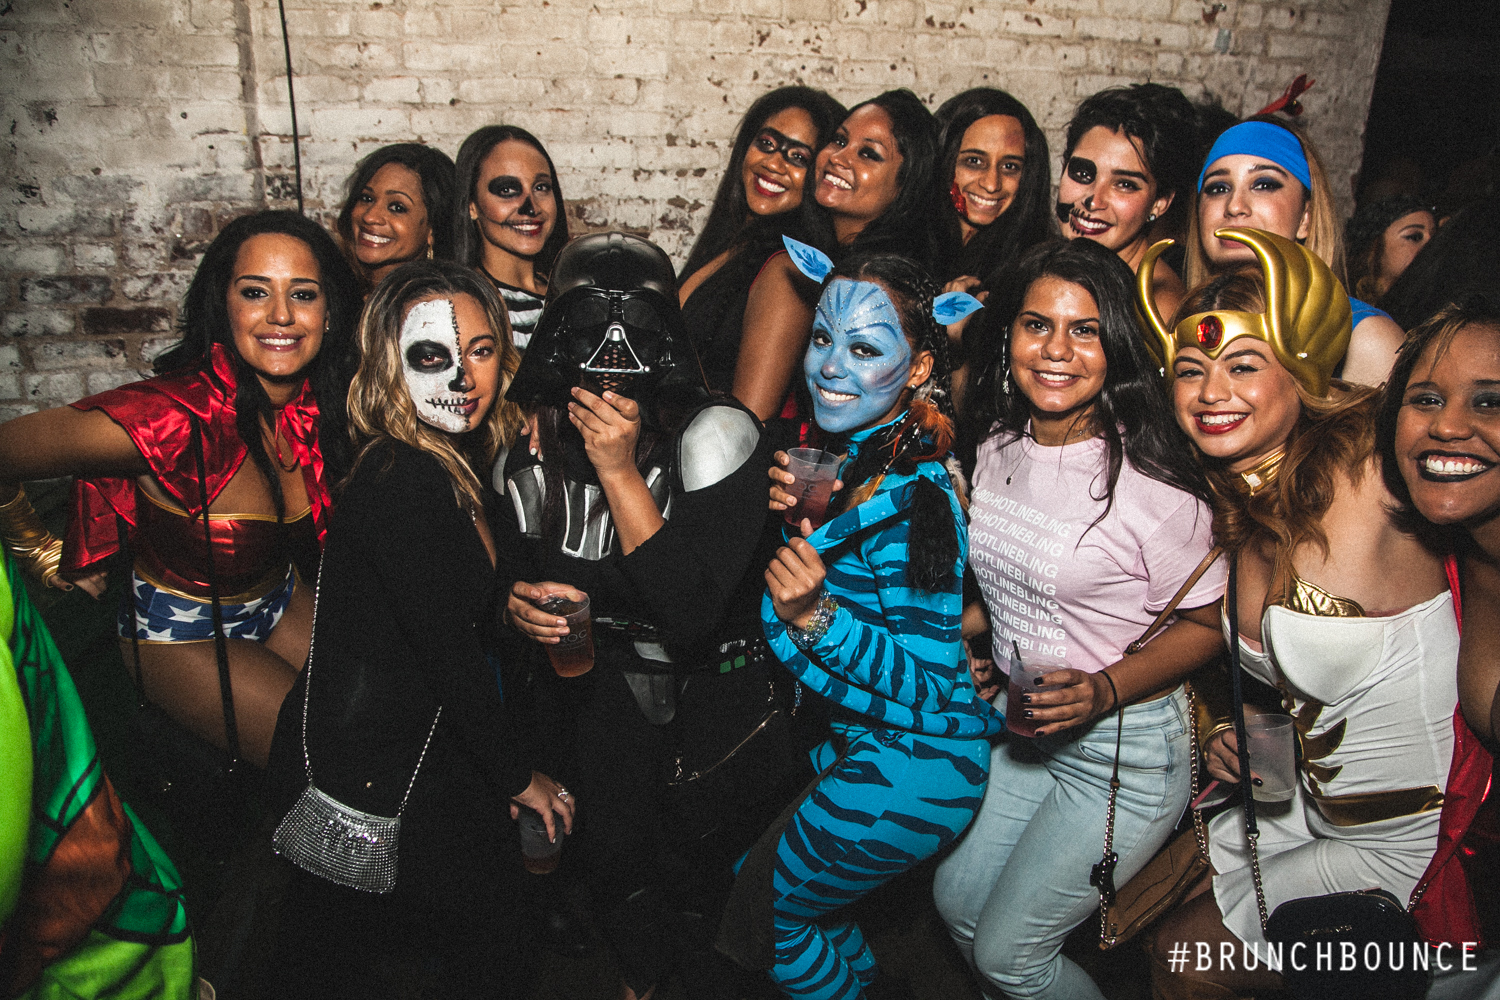 brunch-bounce-x-adidas-originals-halloween-103115_22741502772_o.jpg